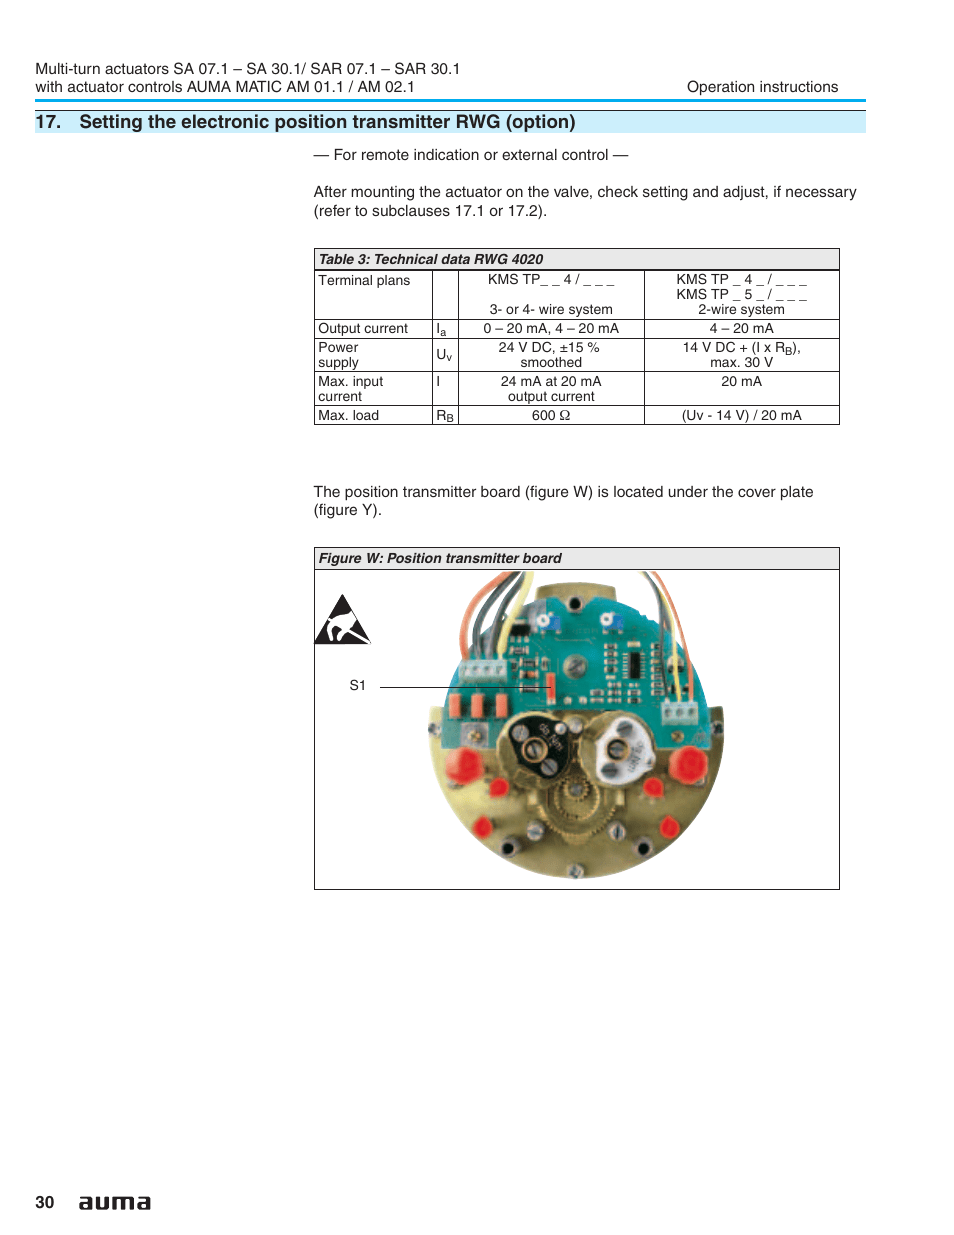 medium resolution of electronic position transmitter rwg 30 auma electric multi turn actuators sa 07 1 16 1 sar 07 1 16 1 matic am 01 1 02 1 user manual page 30 64